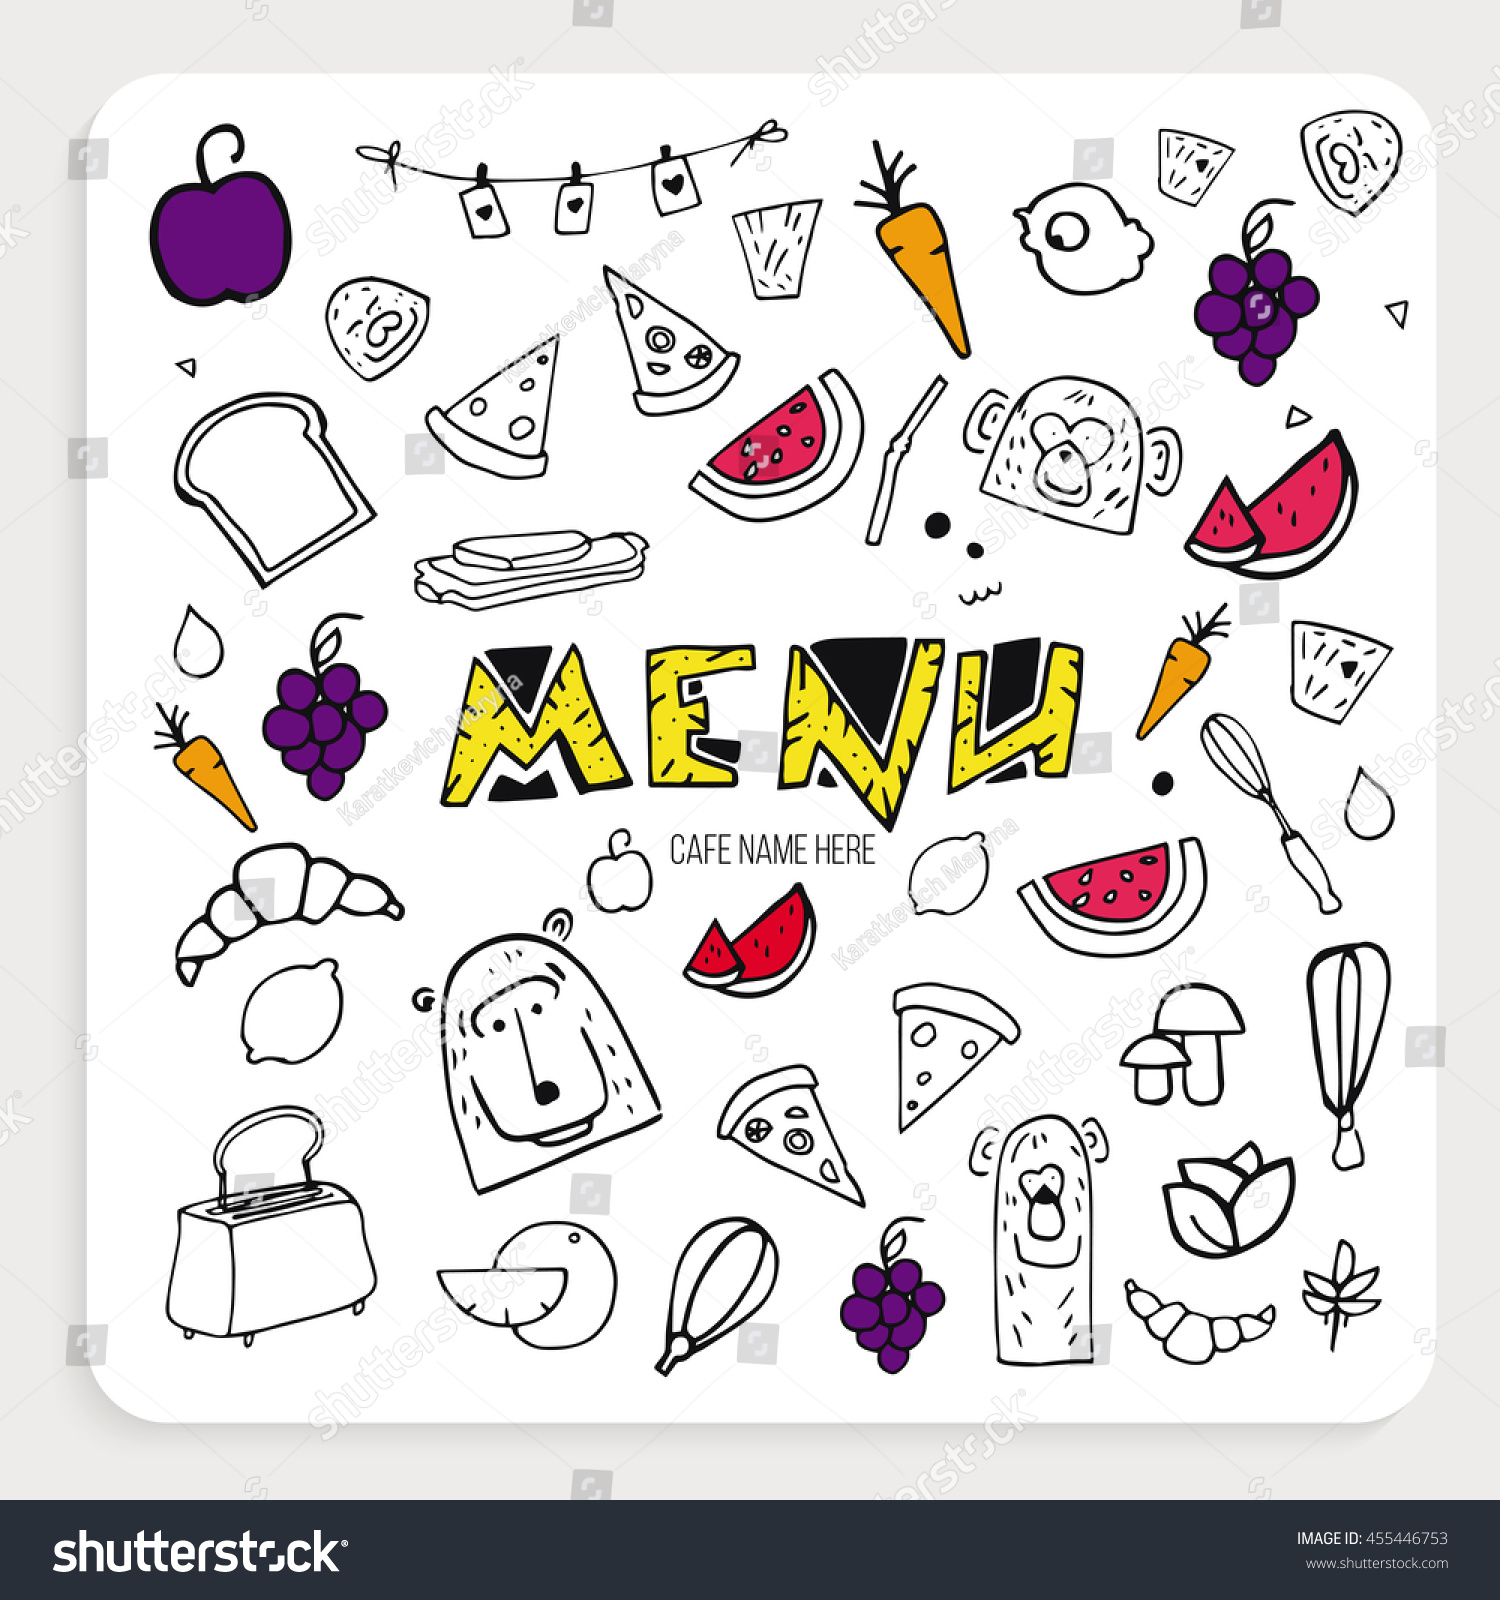 vector cover cafe menu childrens menu stock vector 455446753